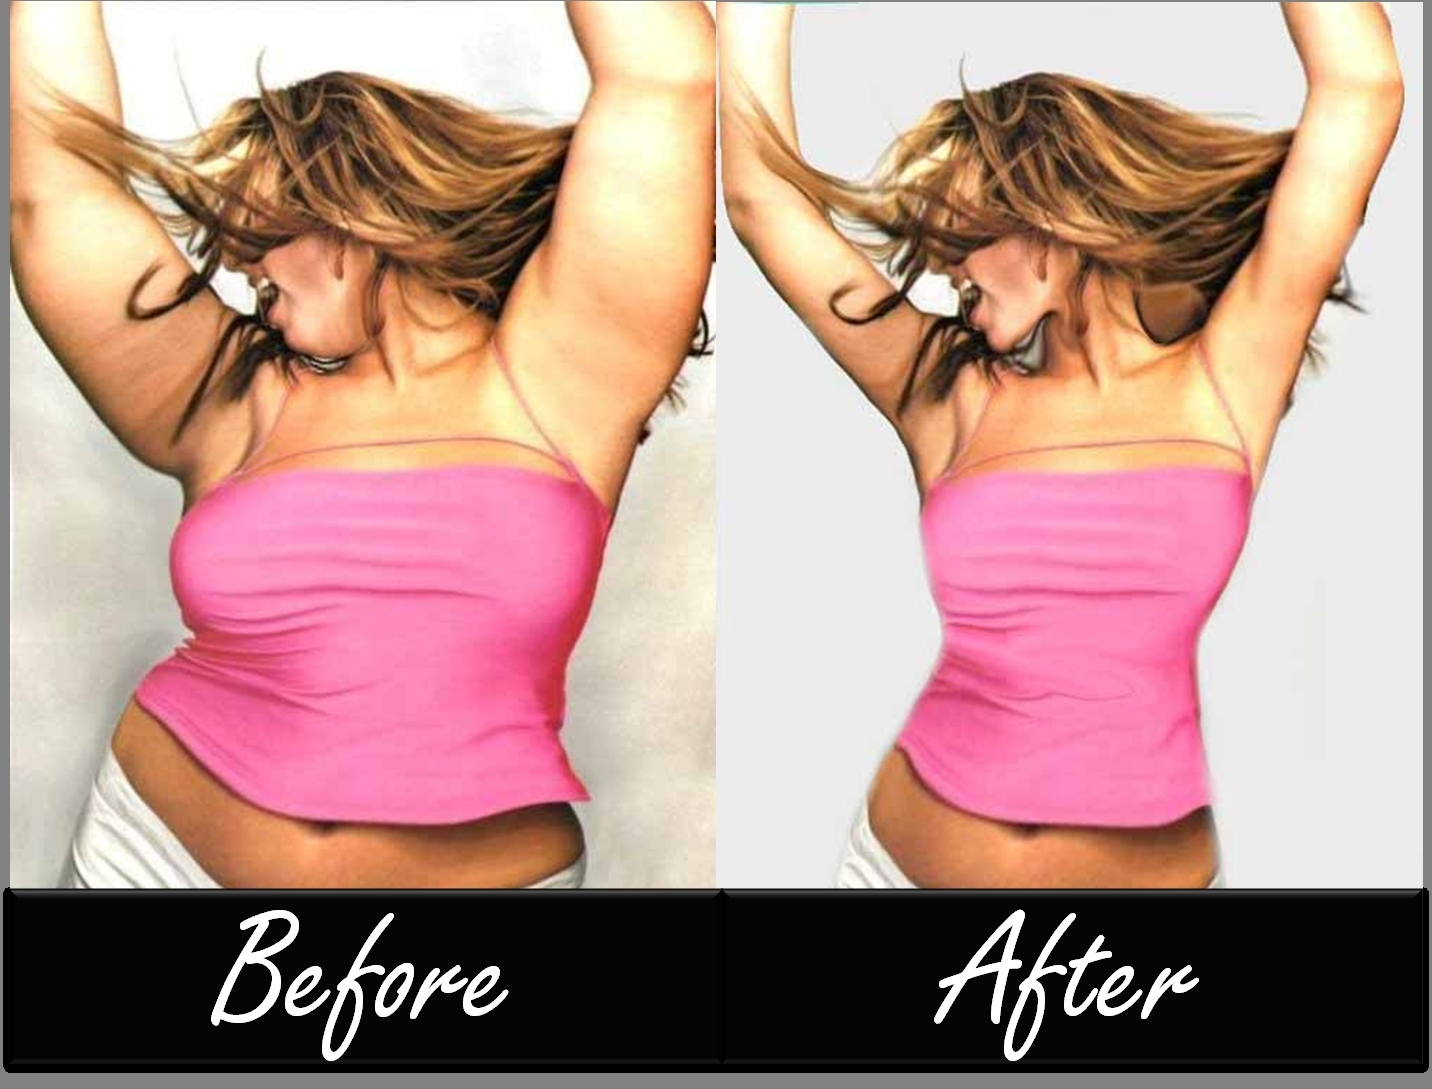 http://images2.fanpop.com/images/photos/3500000/Extreme-Photoshop-Makeover-photoshop-3515453-1432-1089.jpg